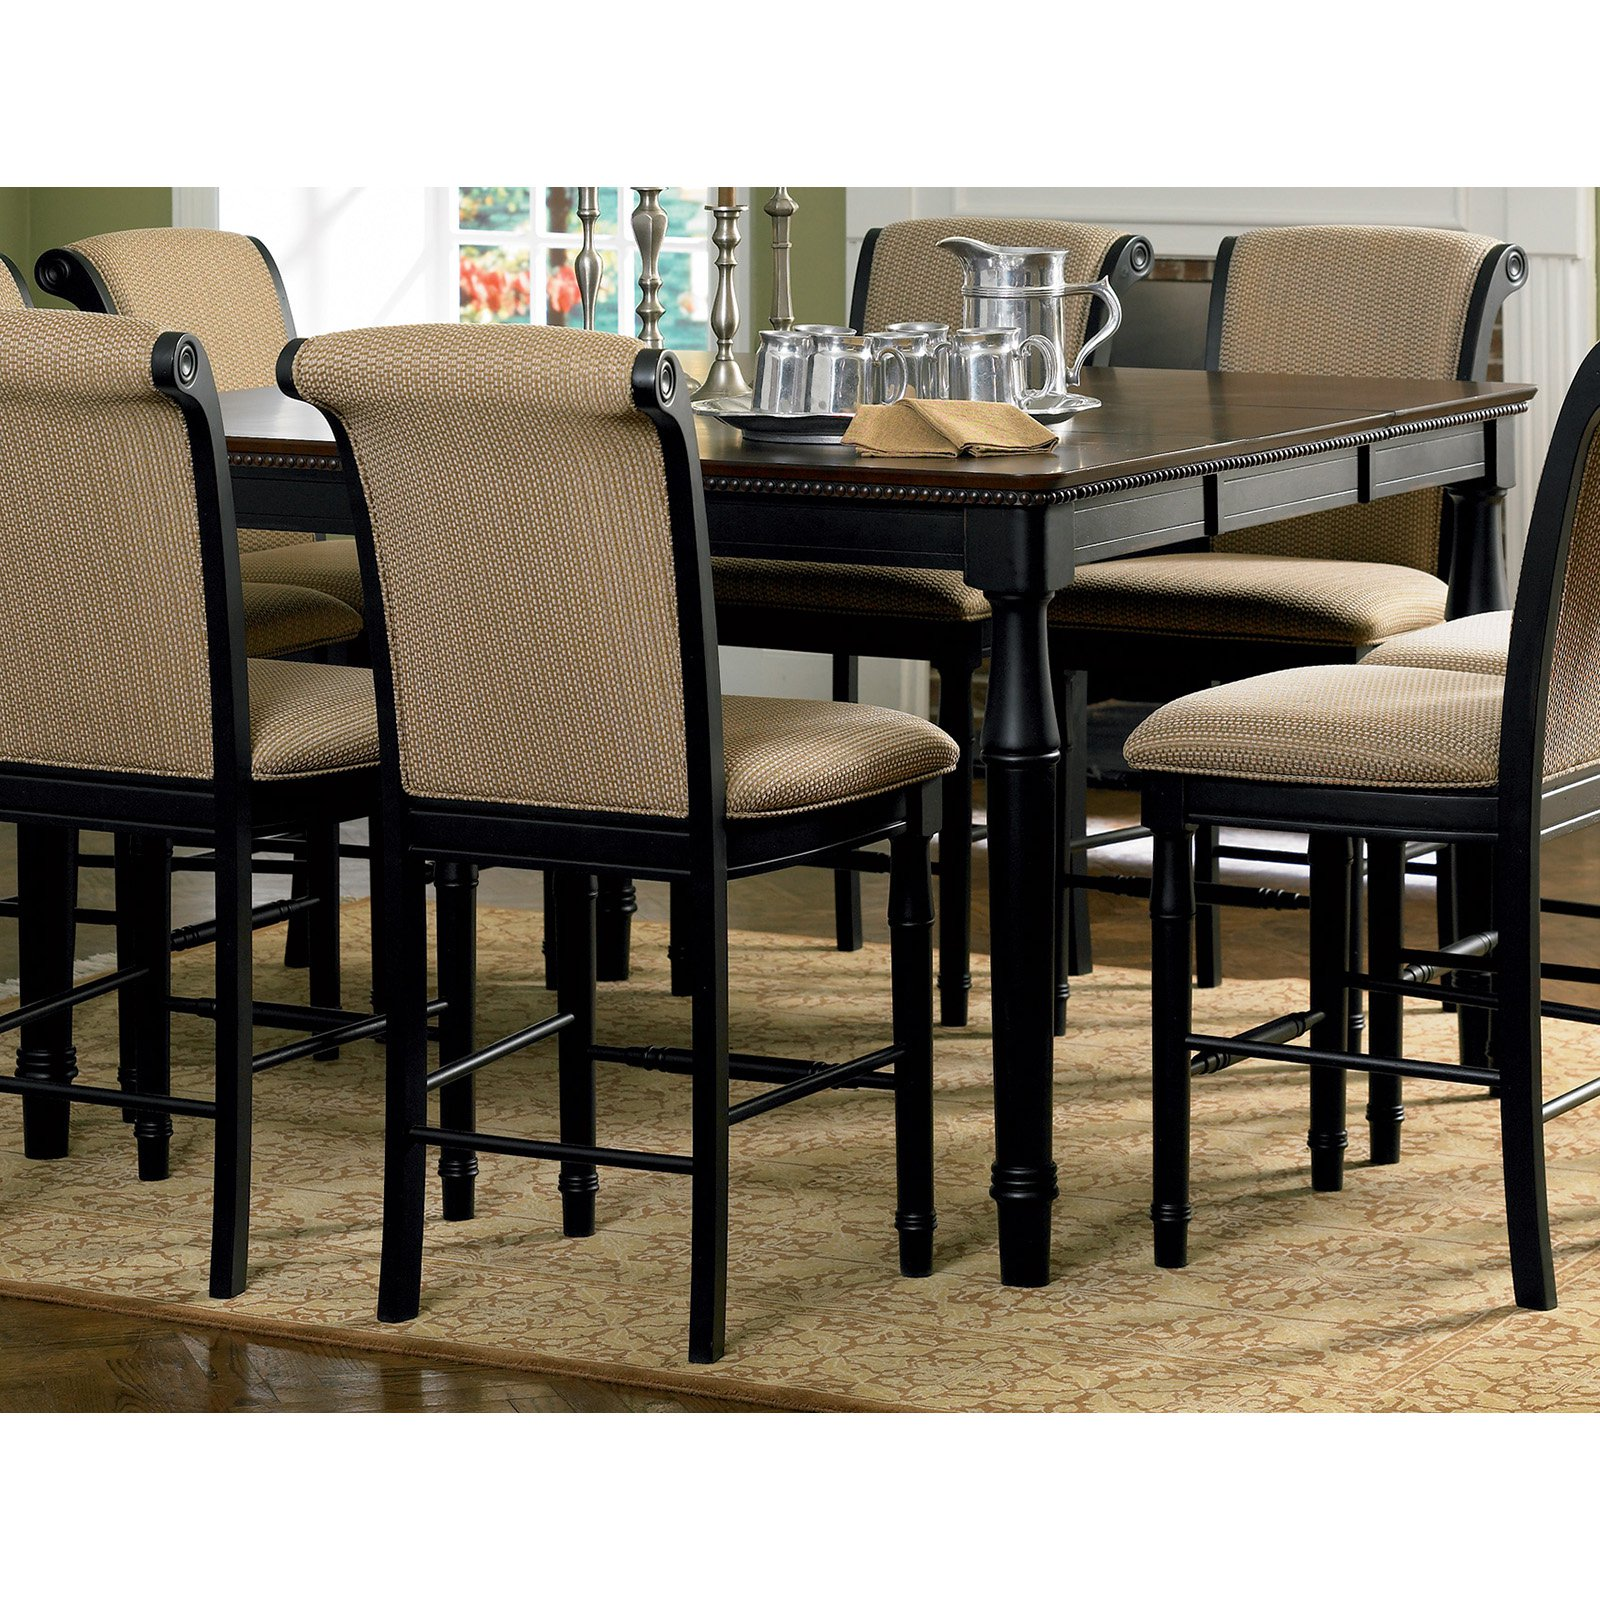 Coaster Furniture Cabrillo Counter Height Dining Table